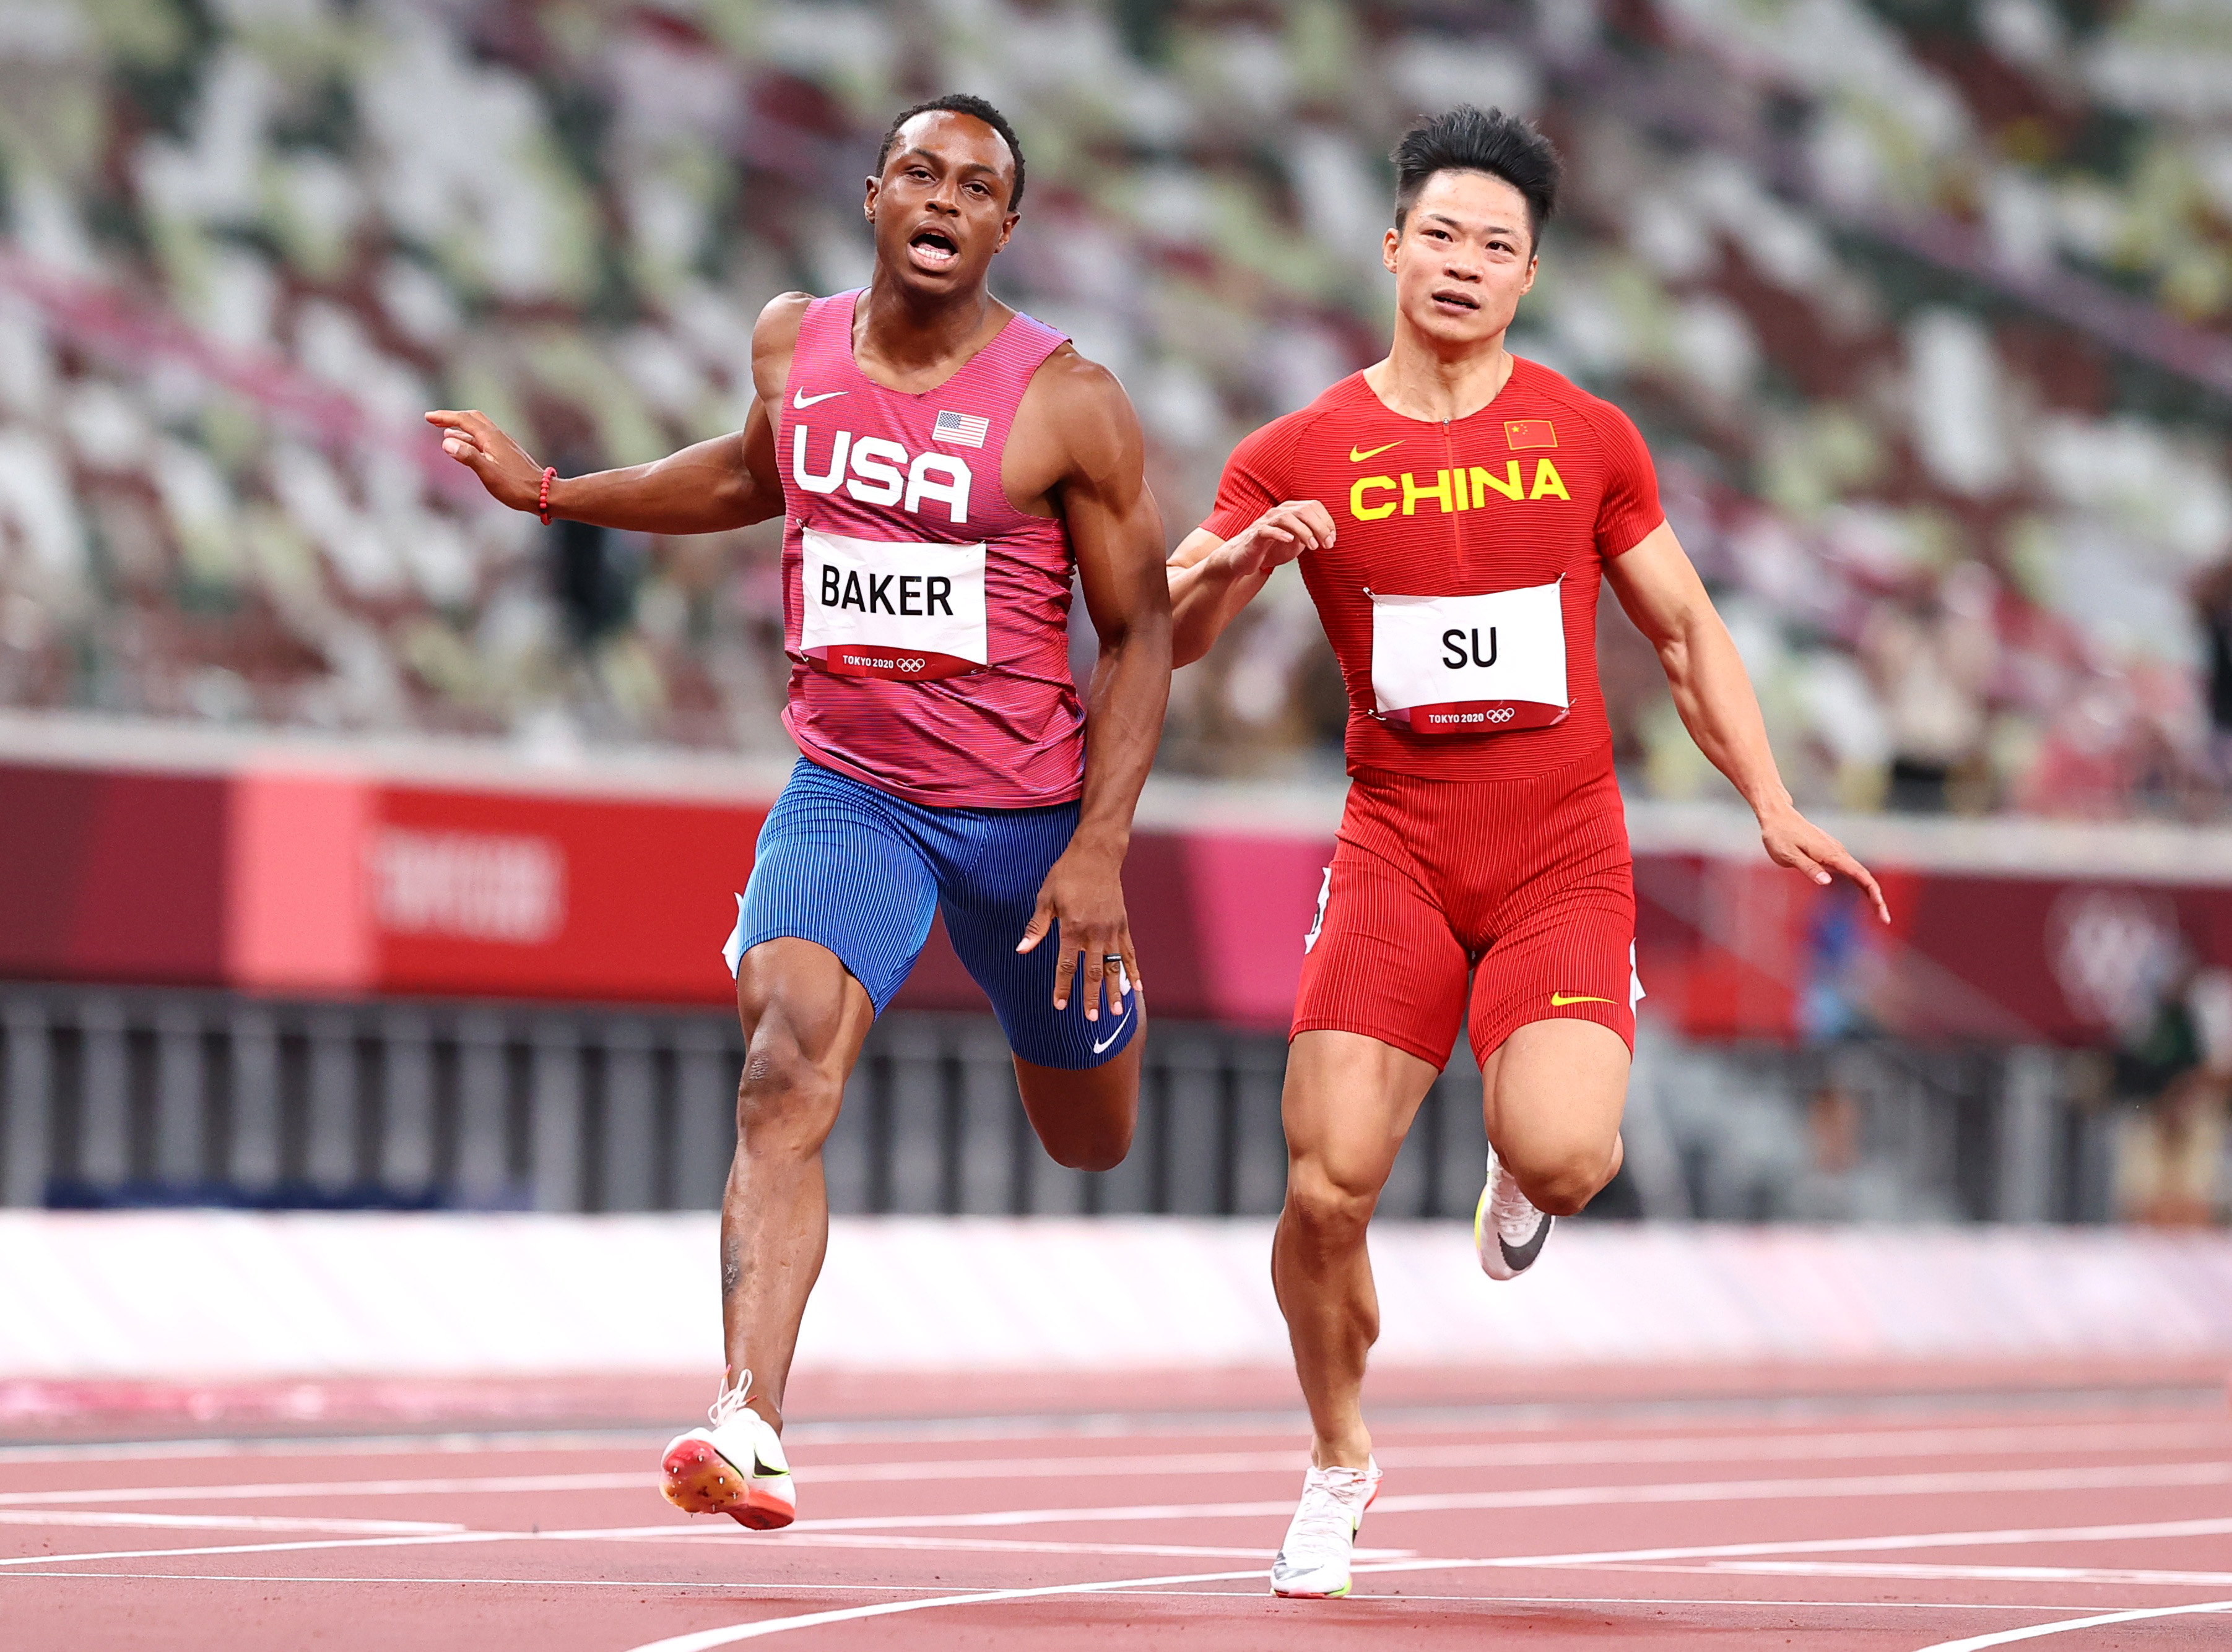 Tokyo 2020 Olympics - Athletics - Men's 100m - Final - OLS - Olympic Stadium, Tokyo, Japan - August 1, 2021. Su Bingtian of China and Ronnie Baker of United States in action REUTERS/Lucy Nicholson/File Photo